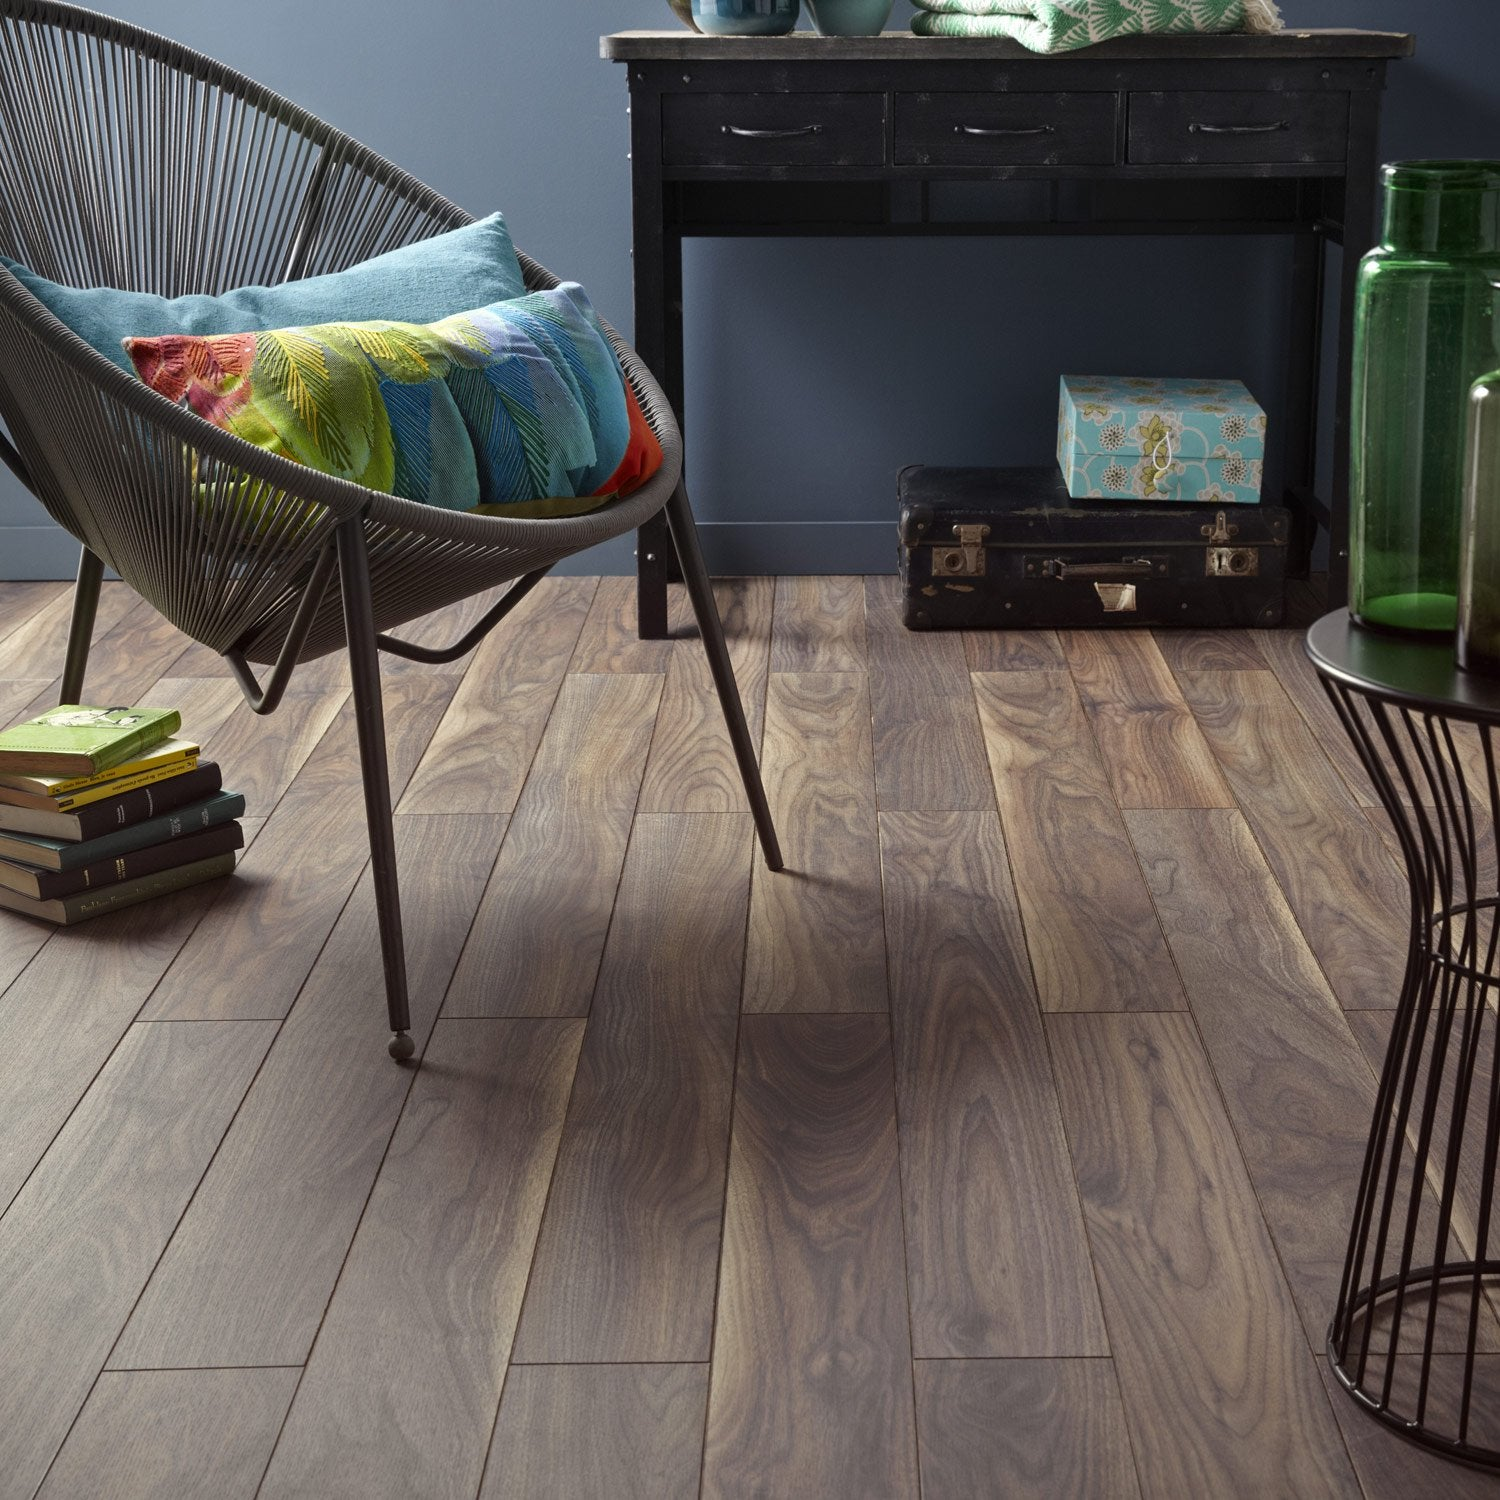 sol stratifi ikea carrelage de sol en bois pour carrelage. Black Bedroom Furniture Sets. Home Design Ideas